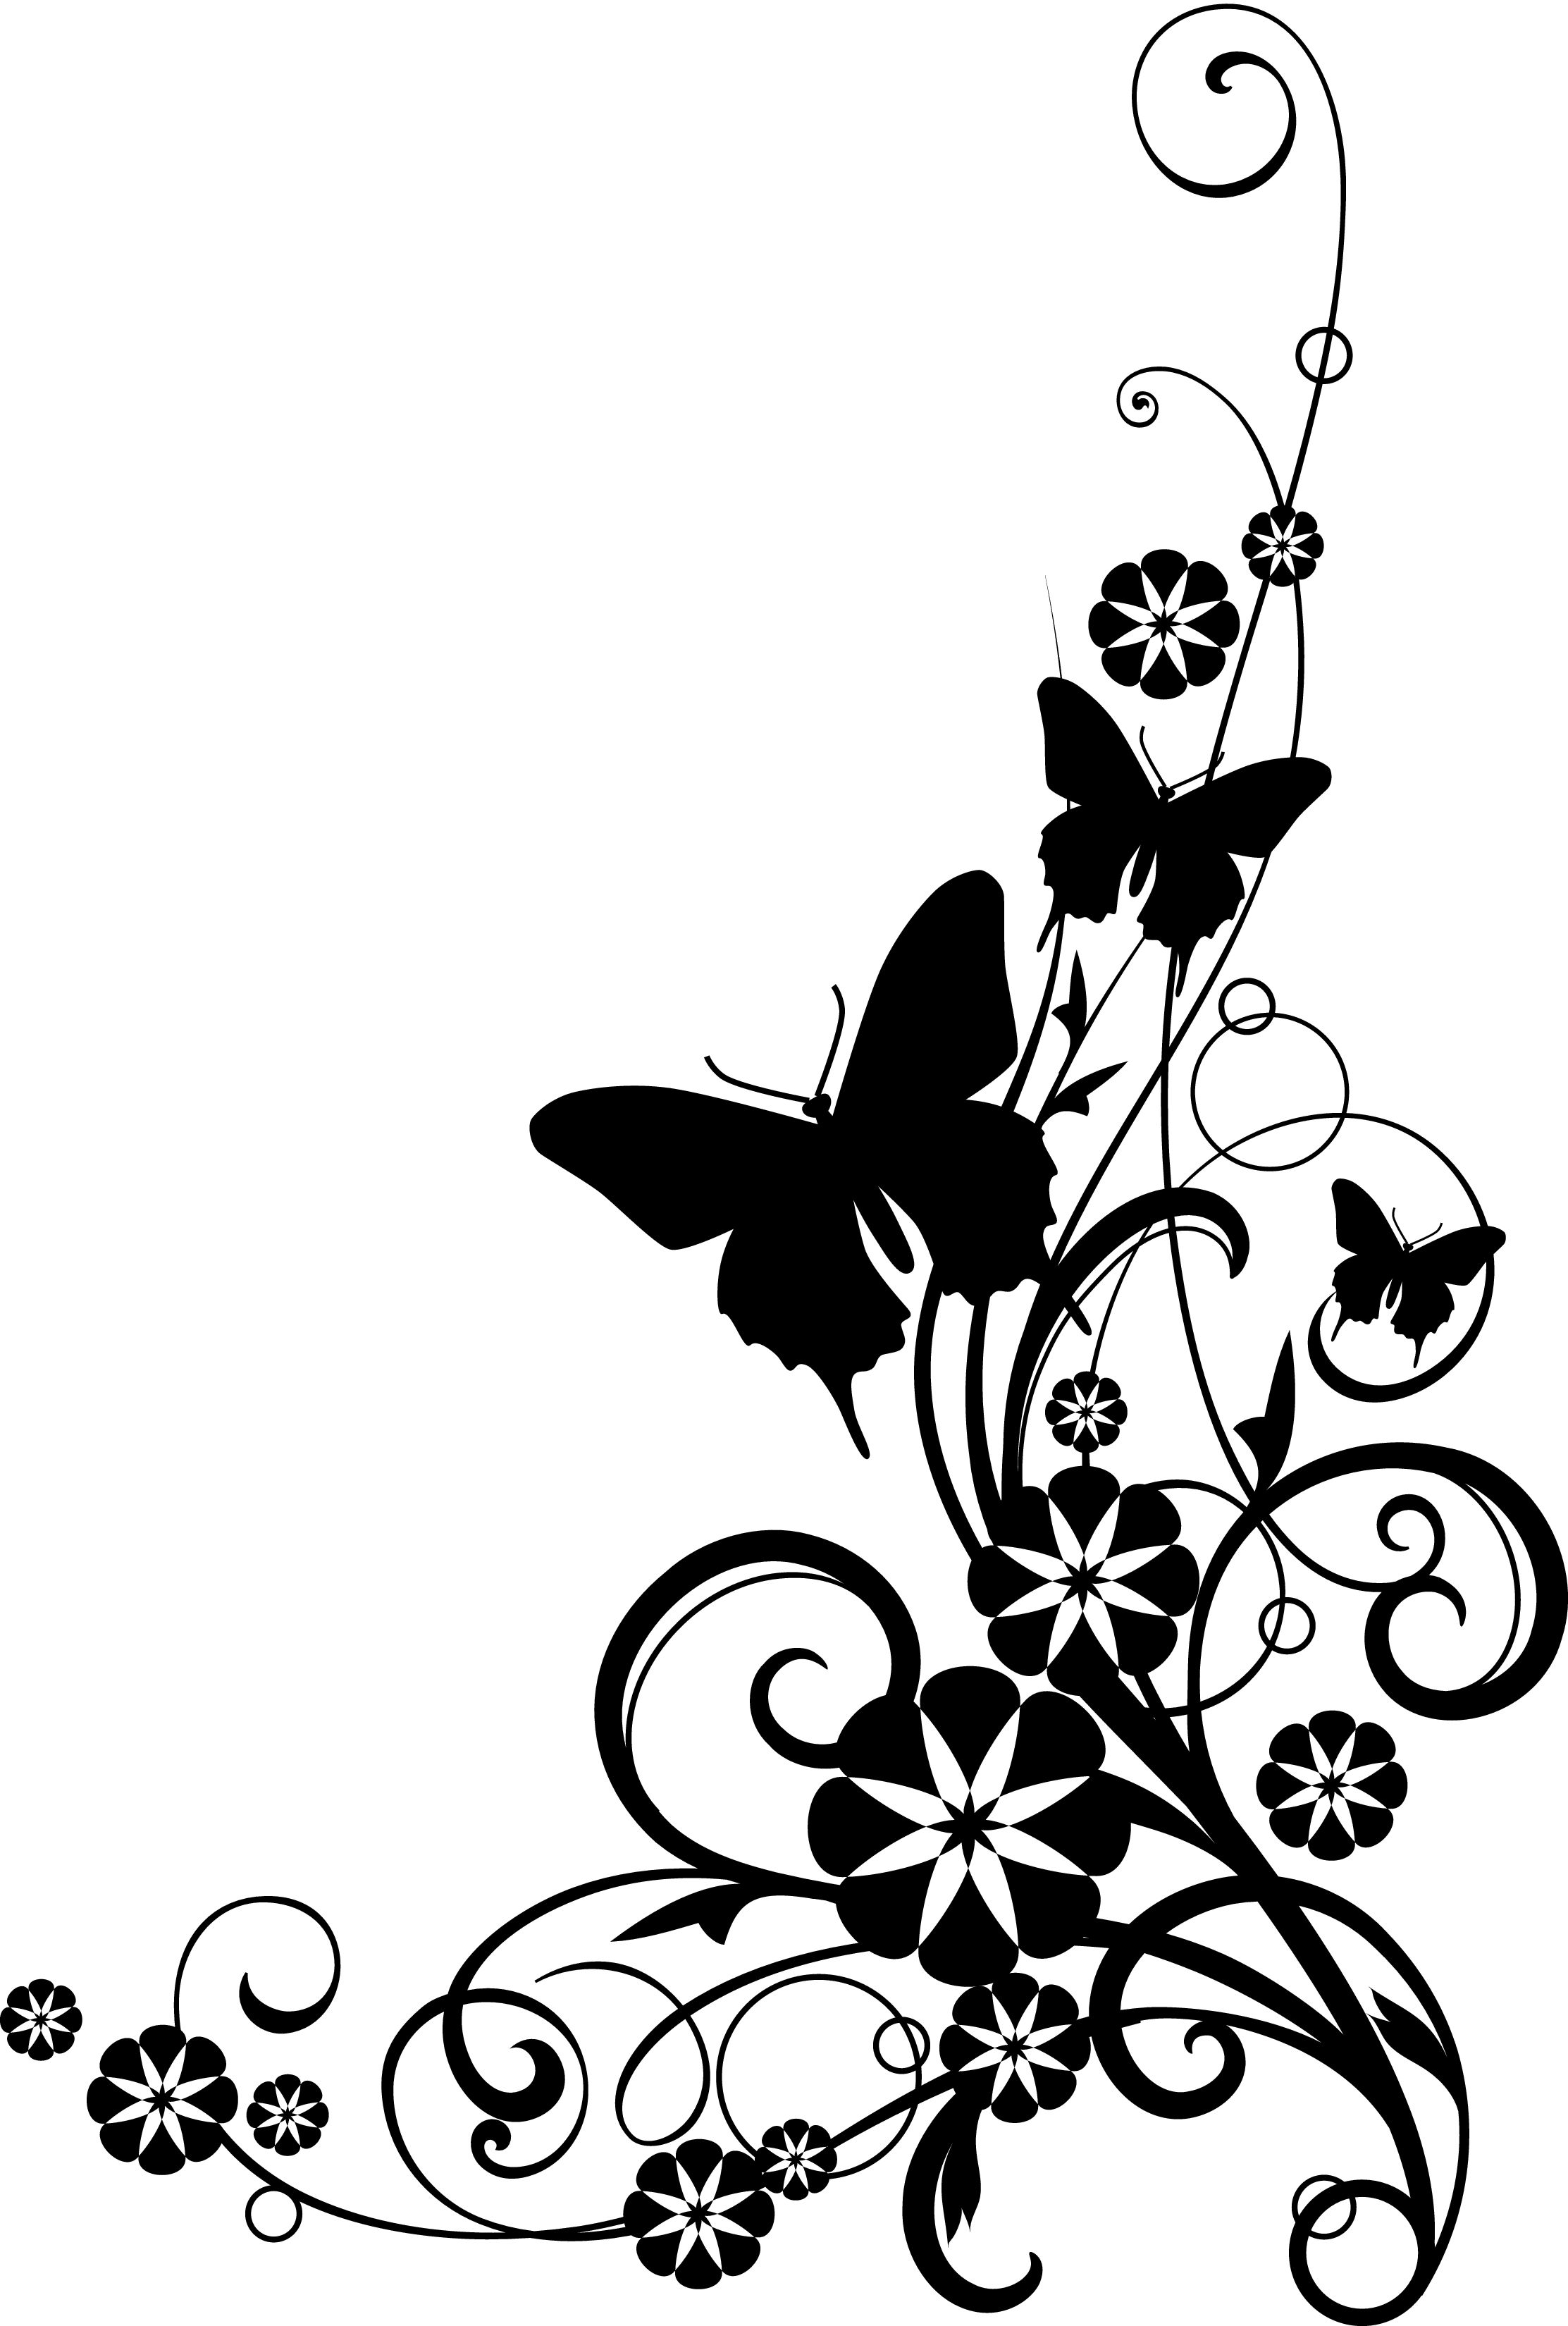 graphic Clipart borders. Wildflower sketch black and